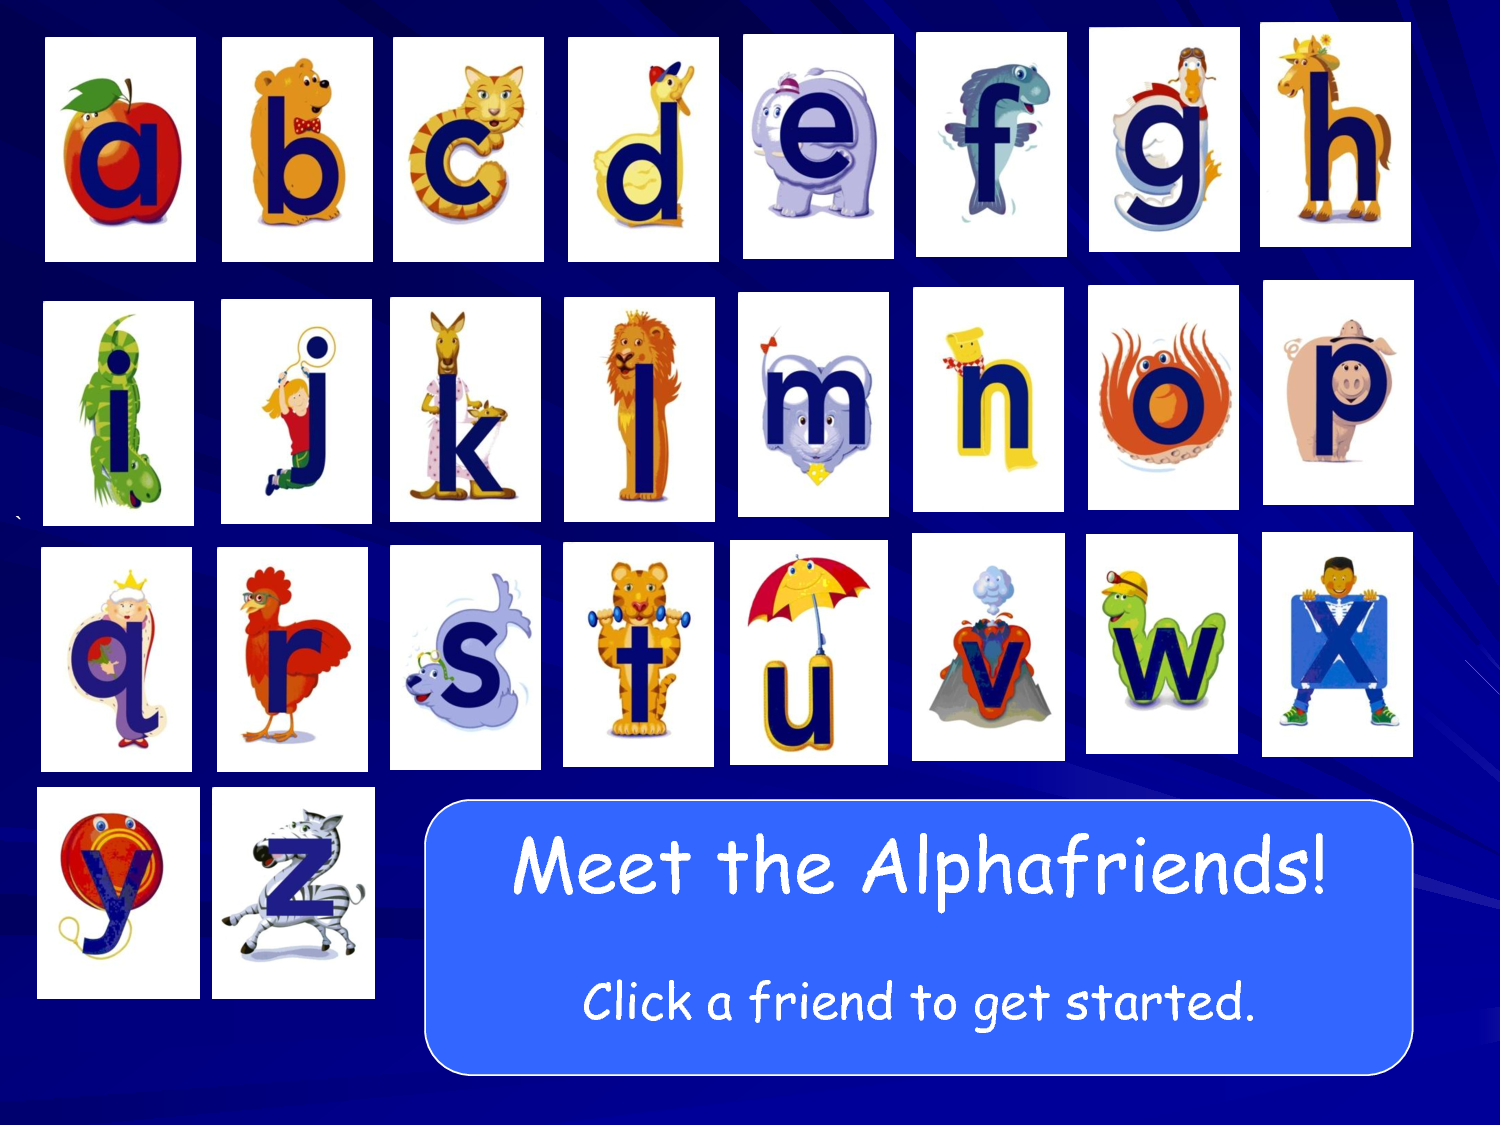 image regarding Alphafriends Printable called Alphafriends Ability Actuality Presentation.ppt Alpha Pals